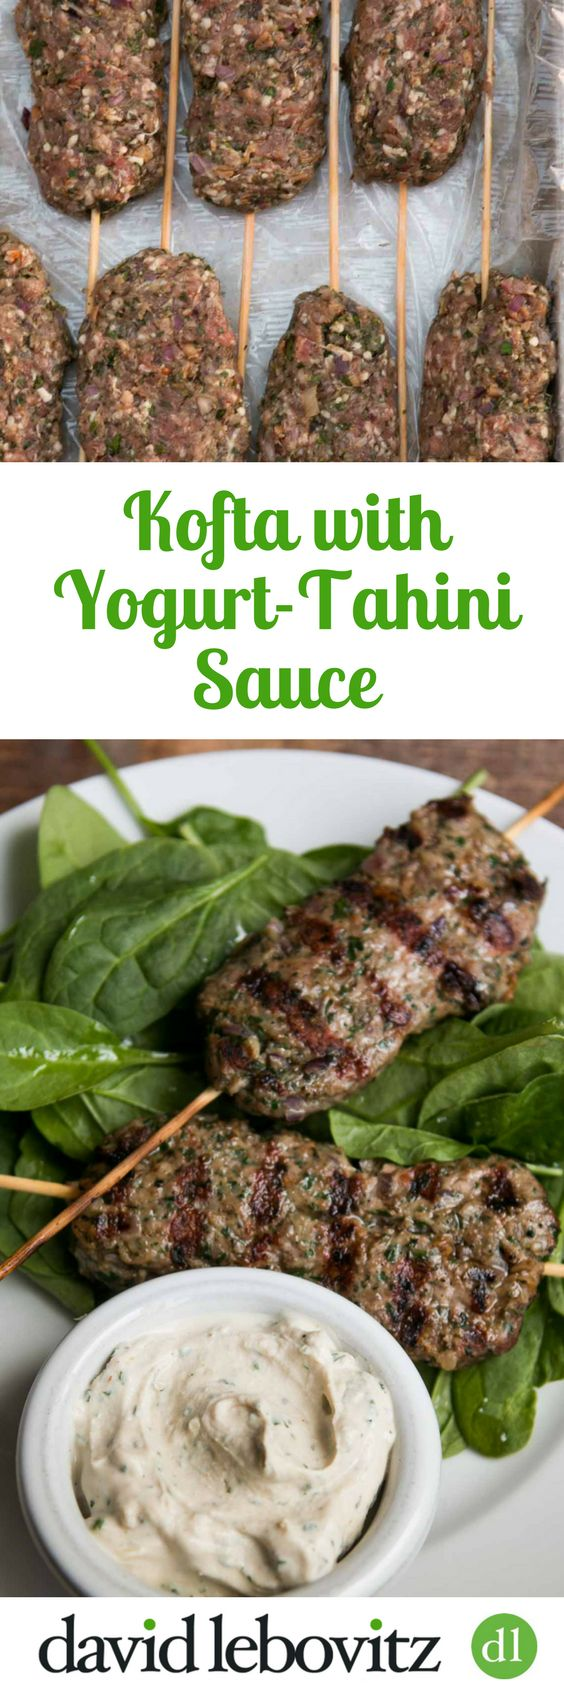 Spiced meat skewers - perfect on the grill or cooked on stovetop!